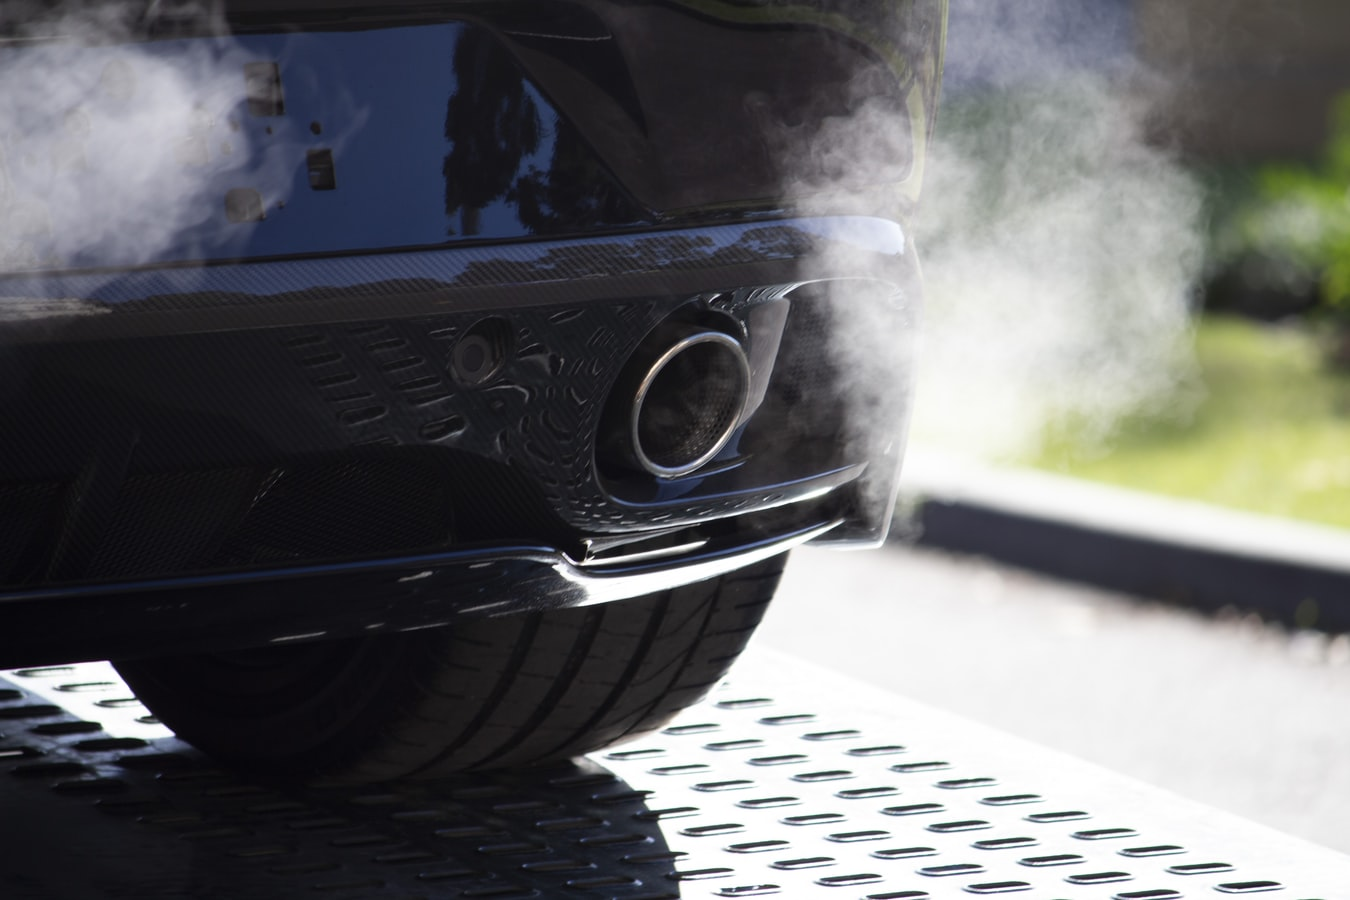 carbon emissions from a car exhaust